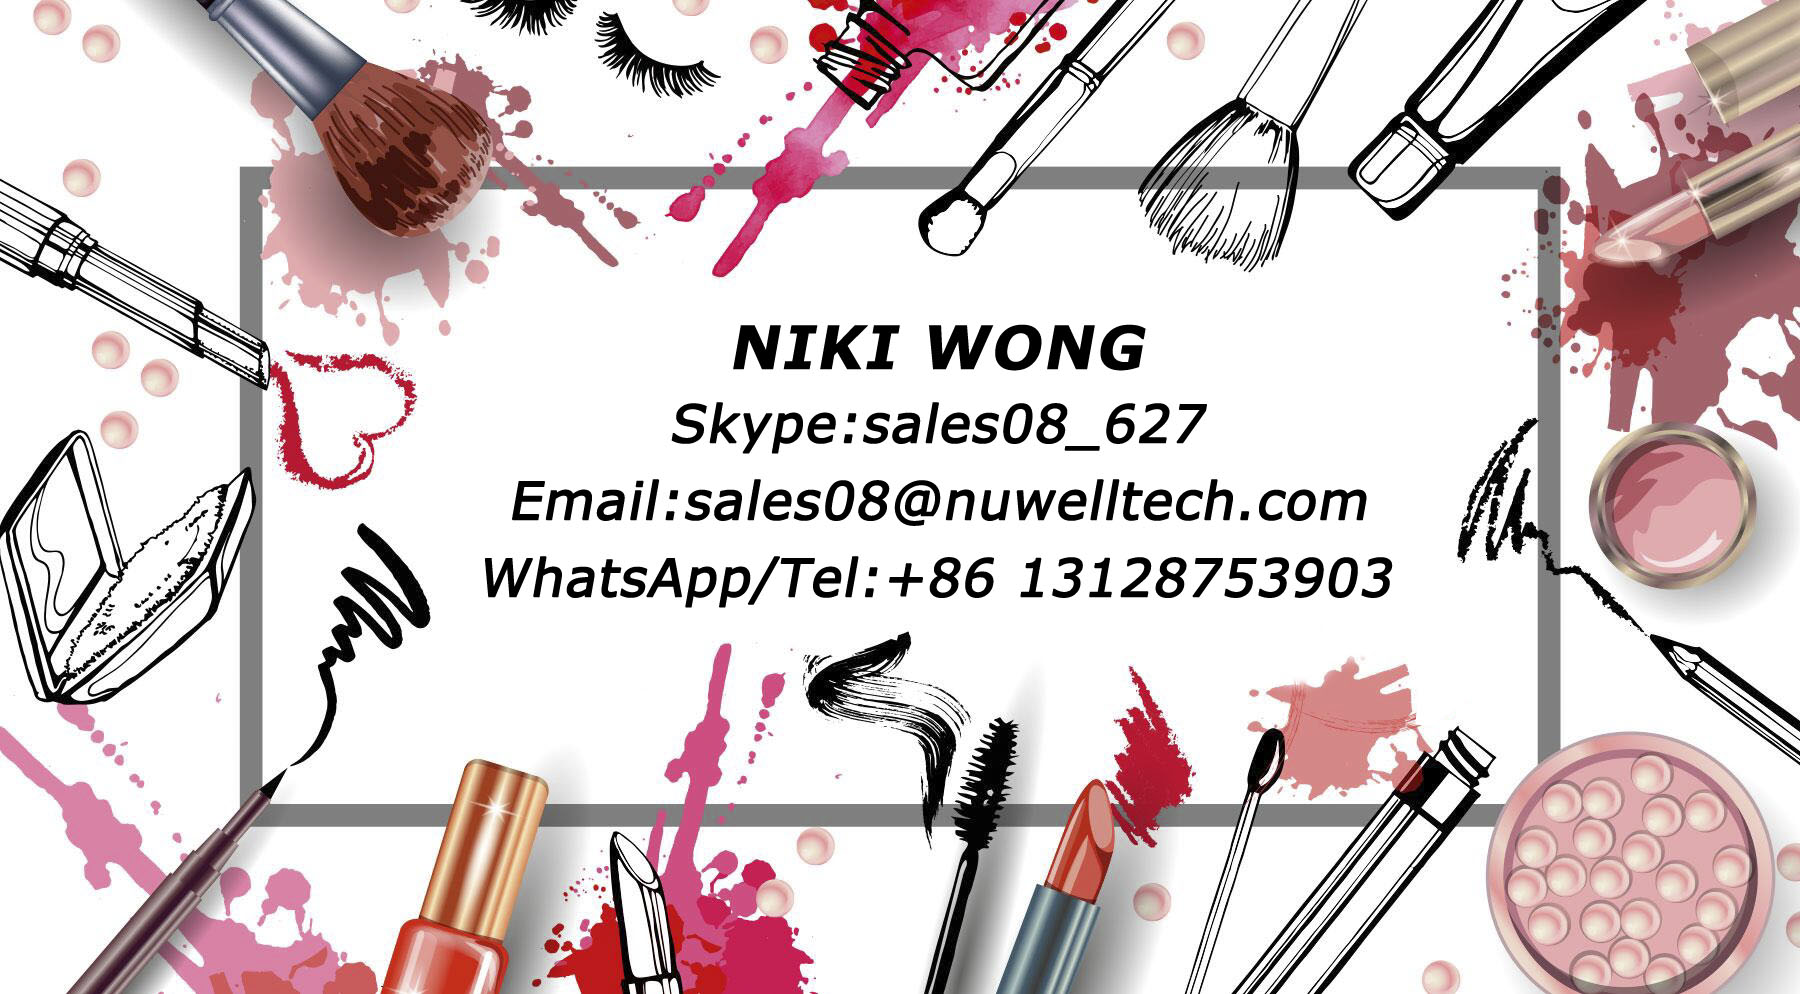 beauty store private label lipgloss makeup organic lipstick matte lip stick lipstick